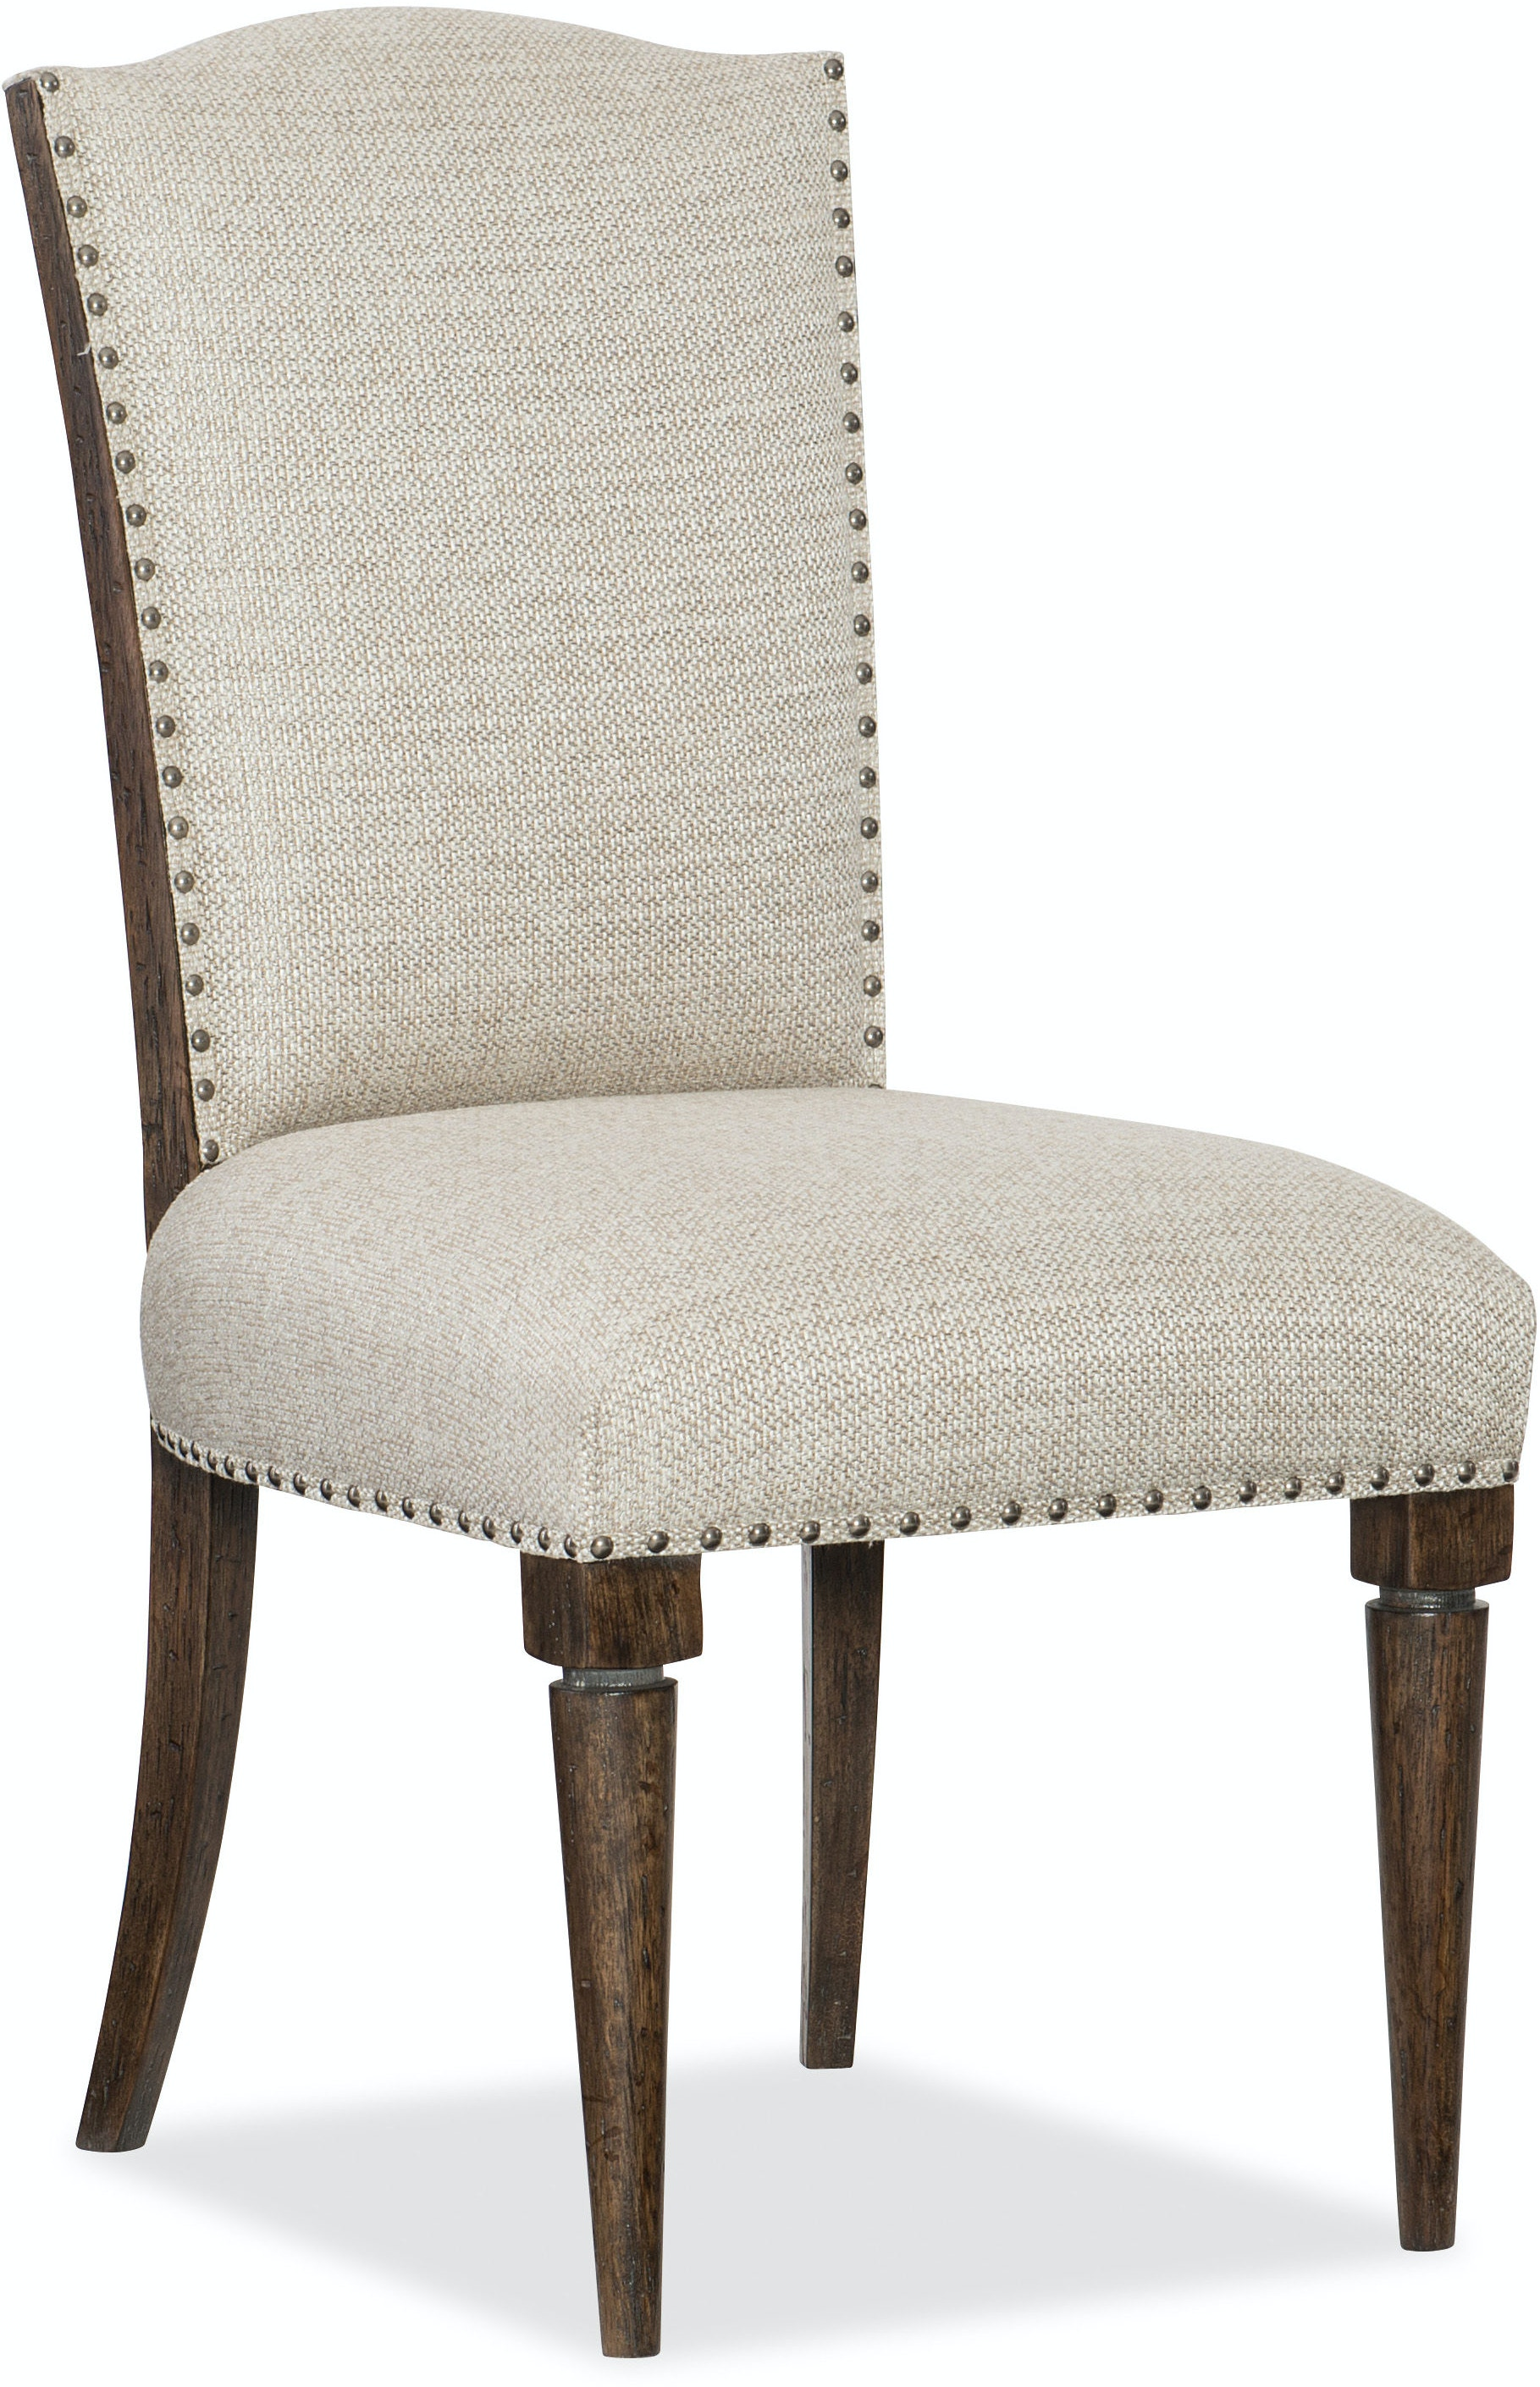 Hooker furniture dining room roslyn county deconstructed for Upholstered dining room side chairs